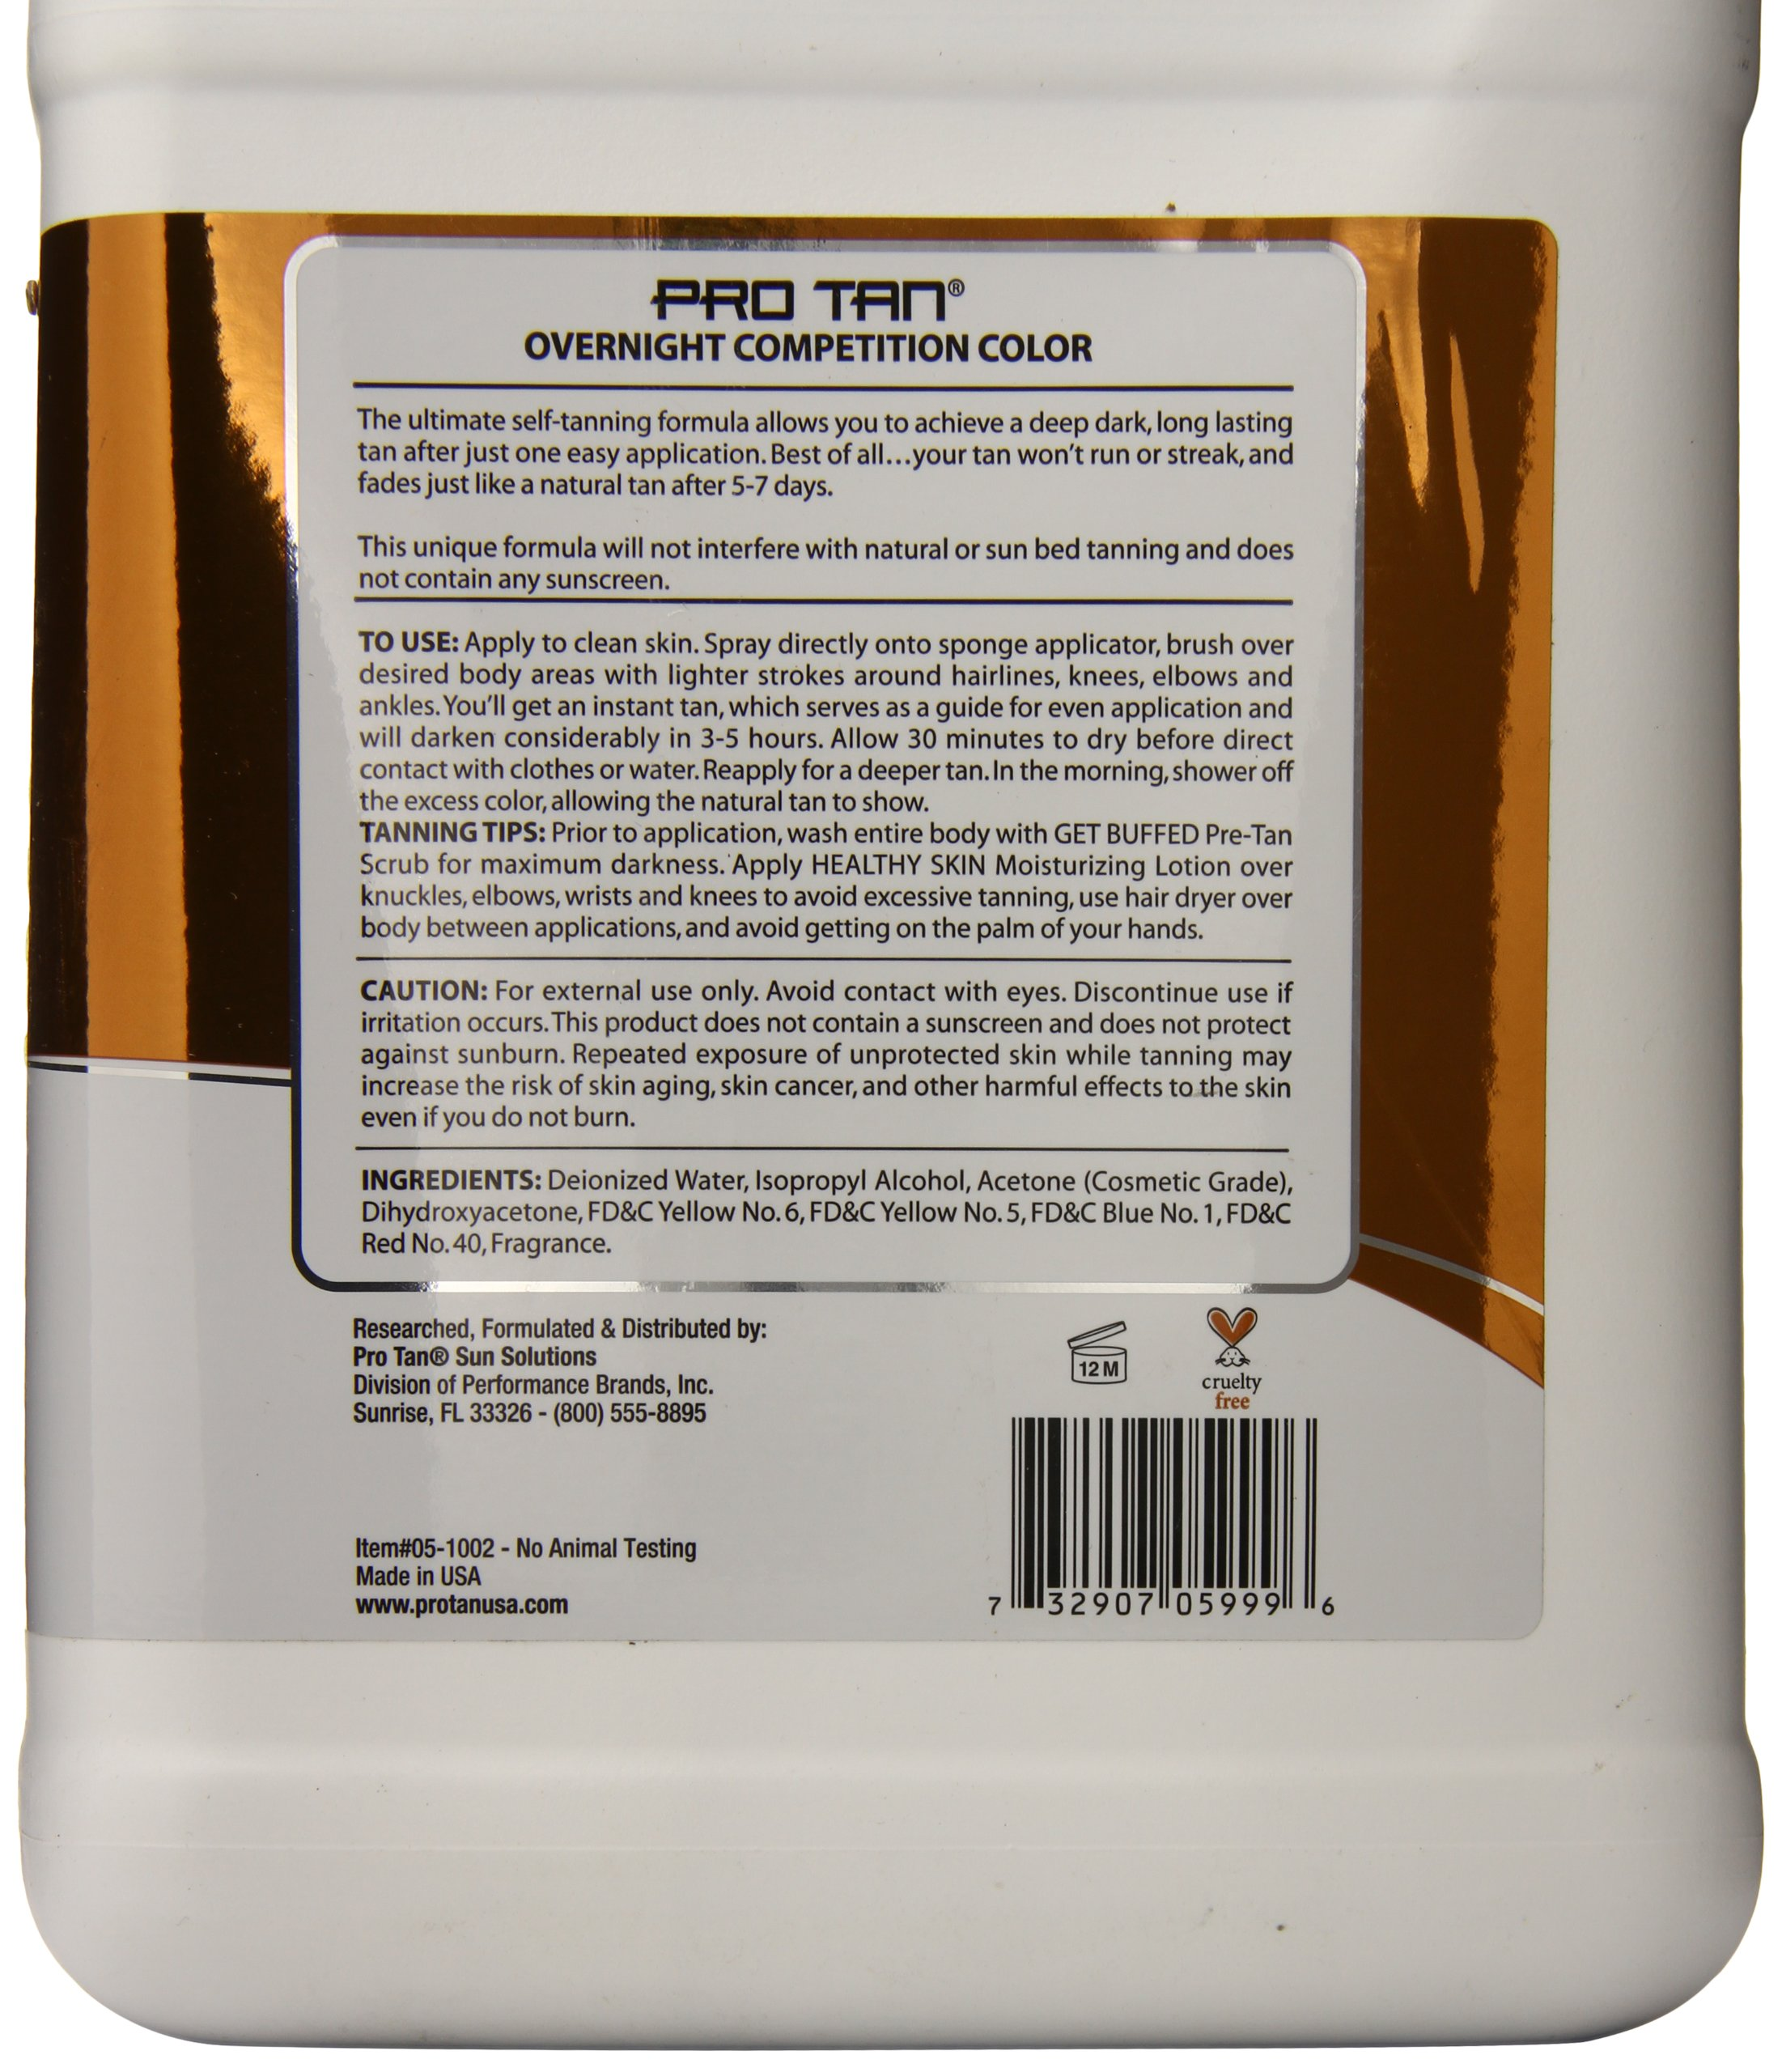 Pro Tan Competition Highlighting Color, Professional Gallon Size, 128 Ounce